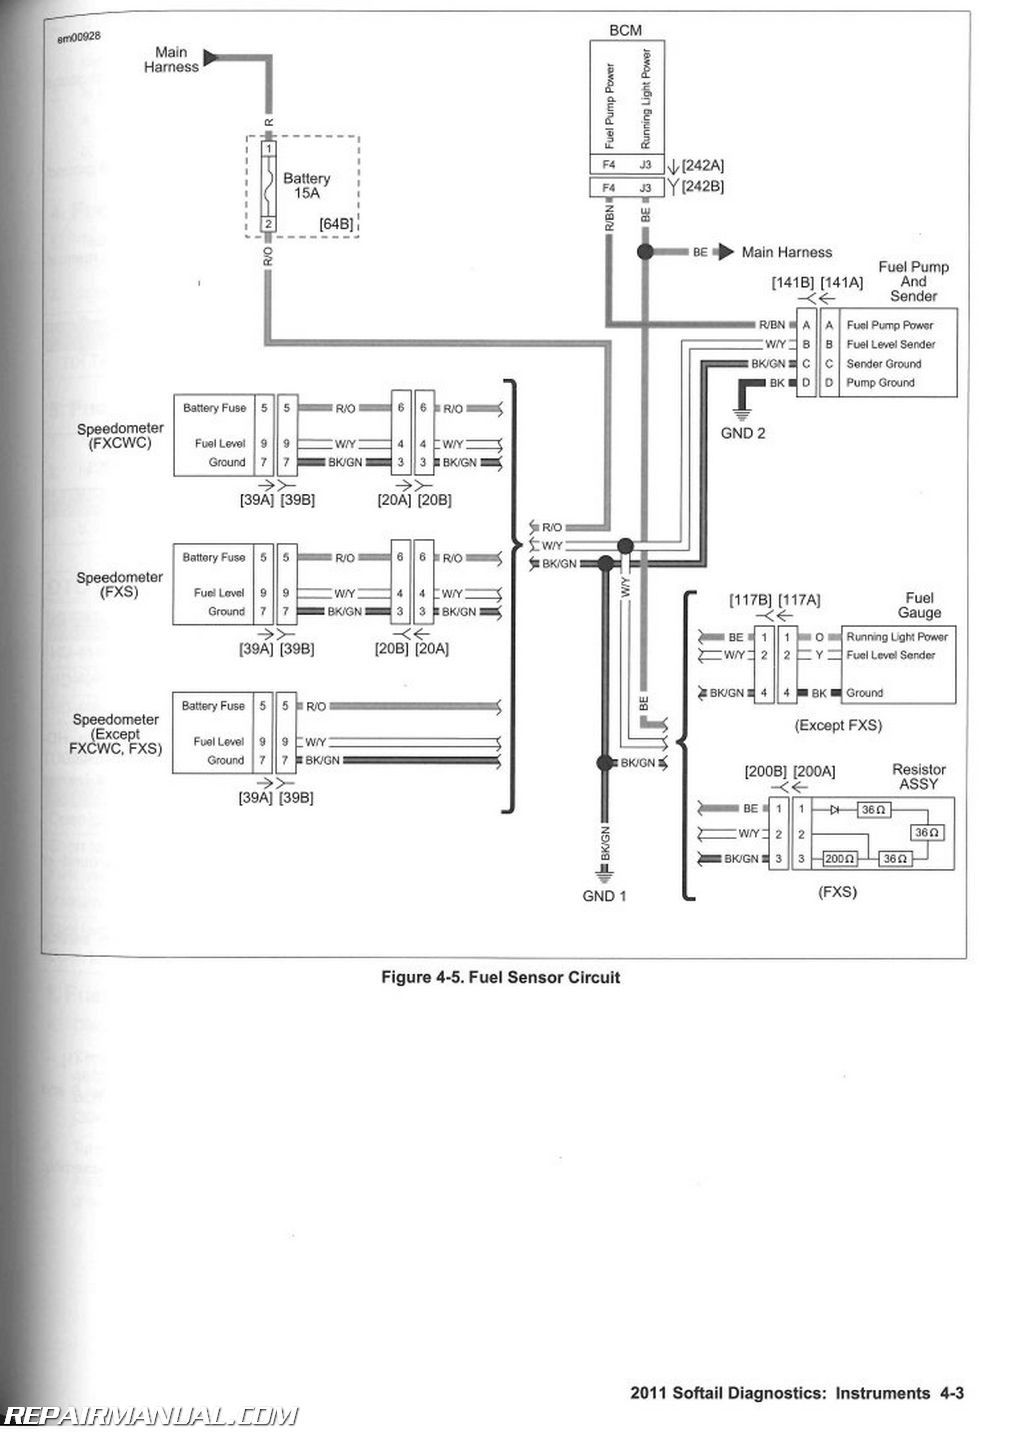 WRG-6786] Harley Fuel Gauge Wiring Diagram on